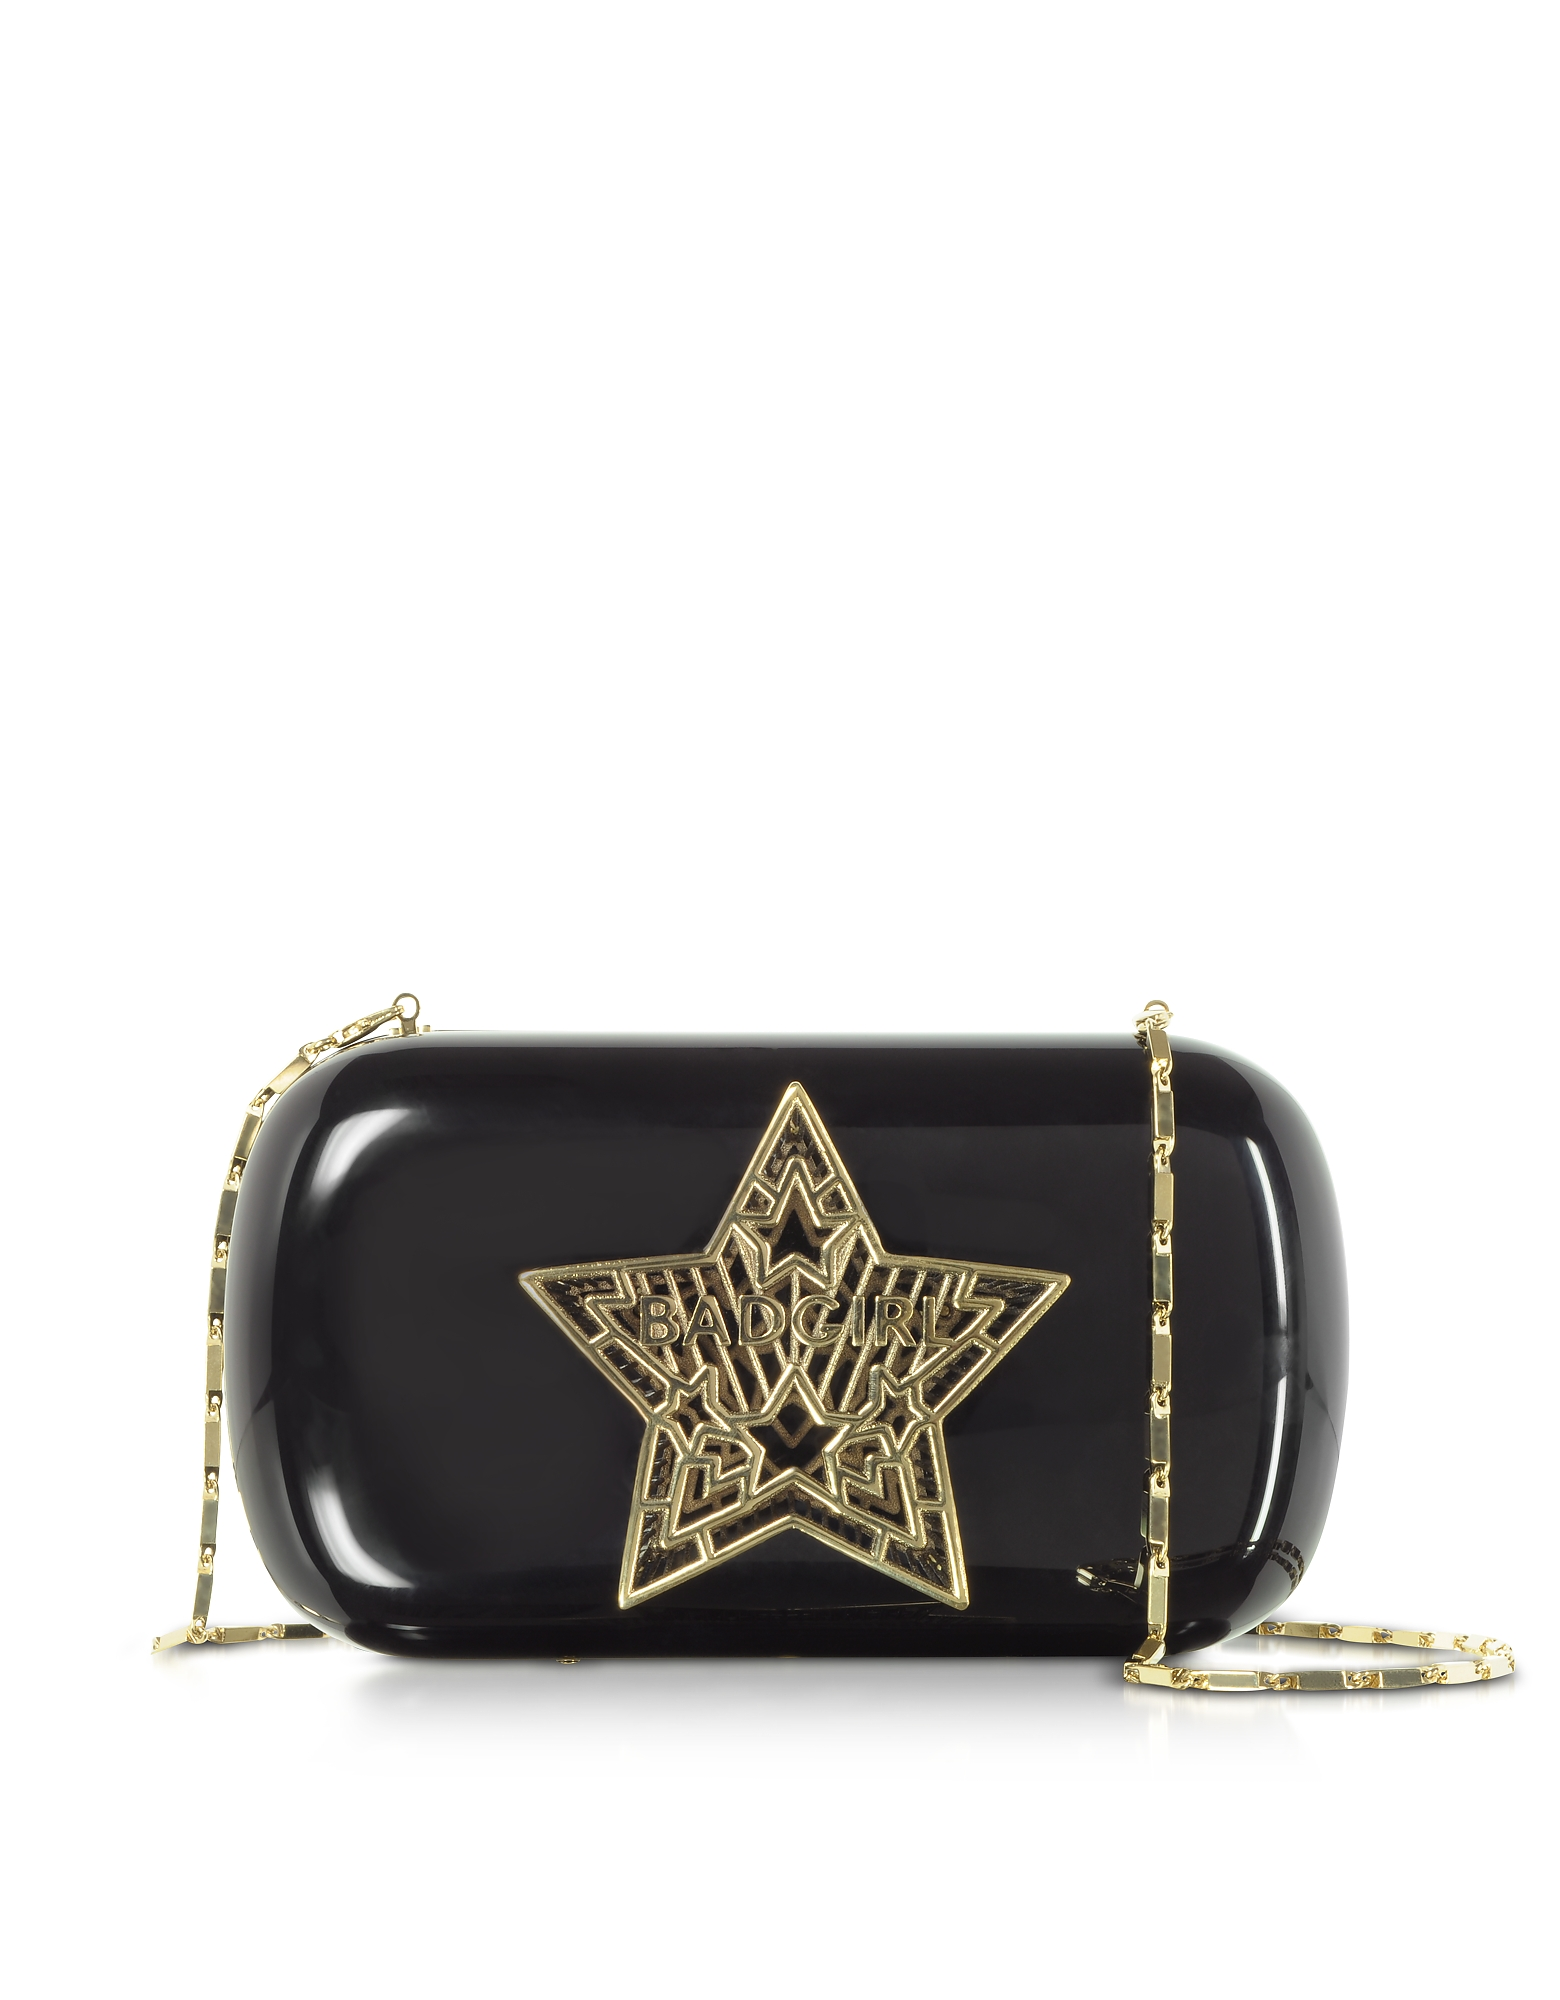 Bad Girl Clutch in Plexiglass Nero con Stella 3D